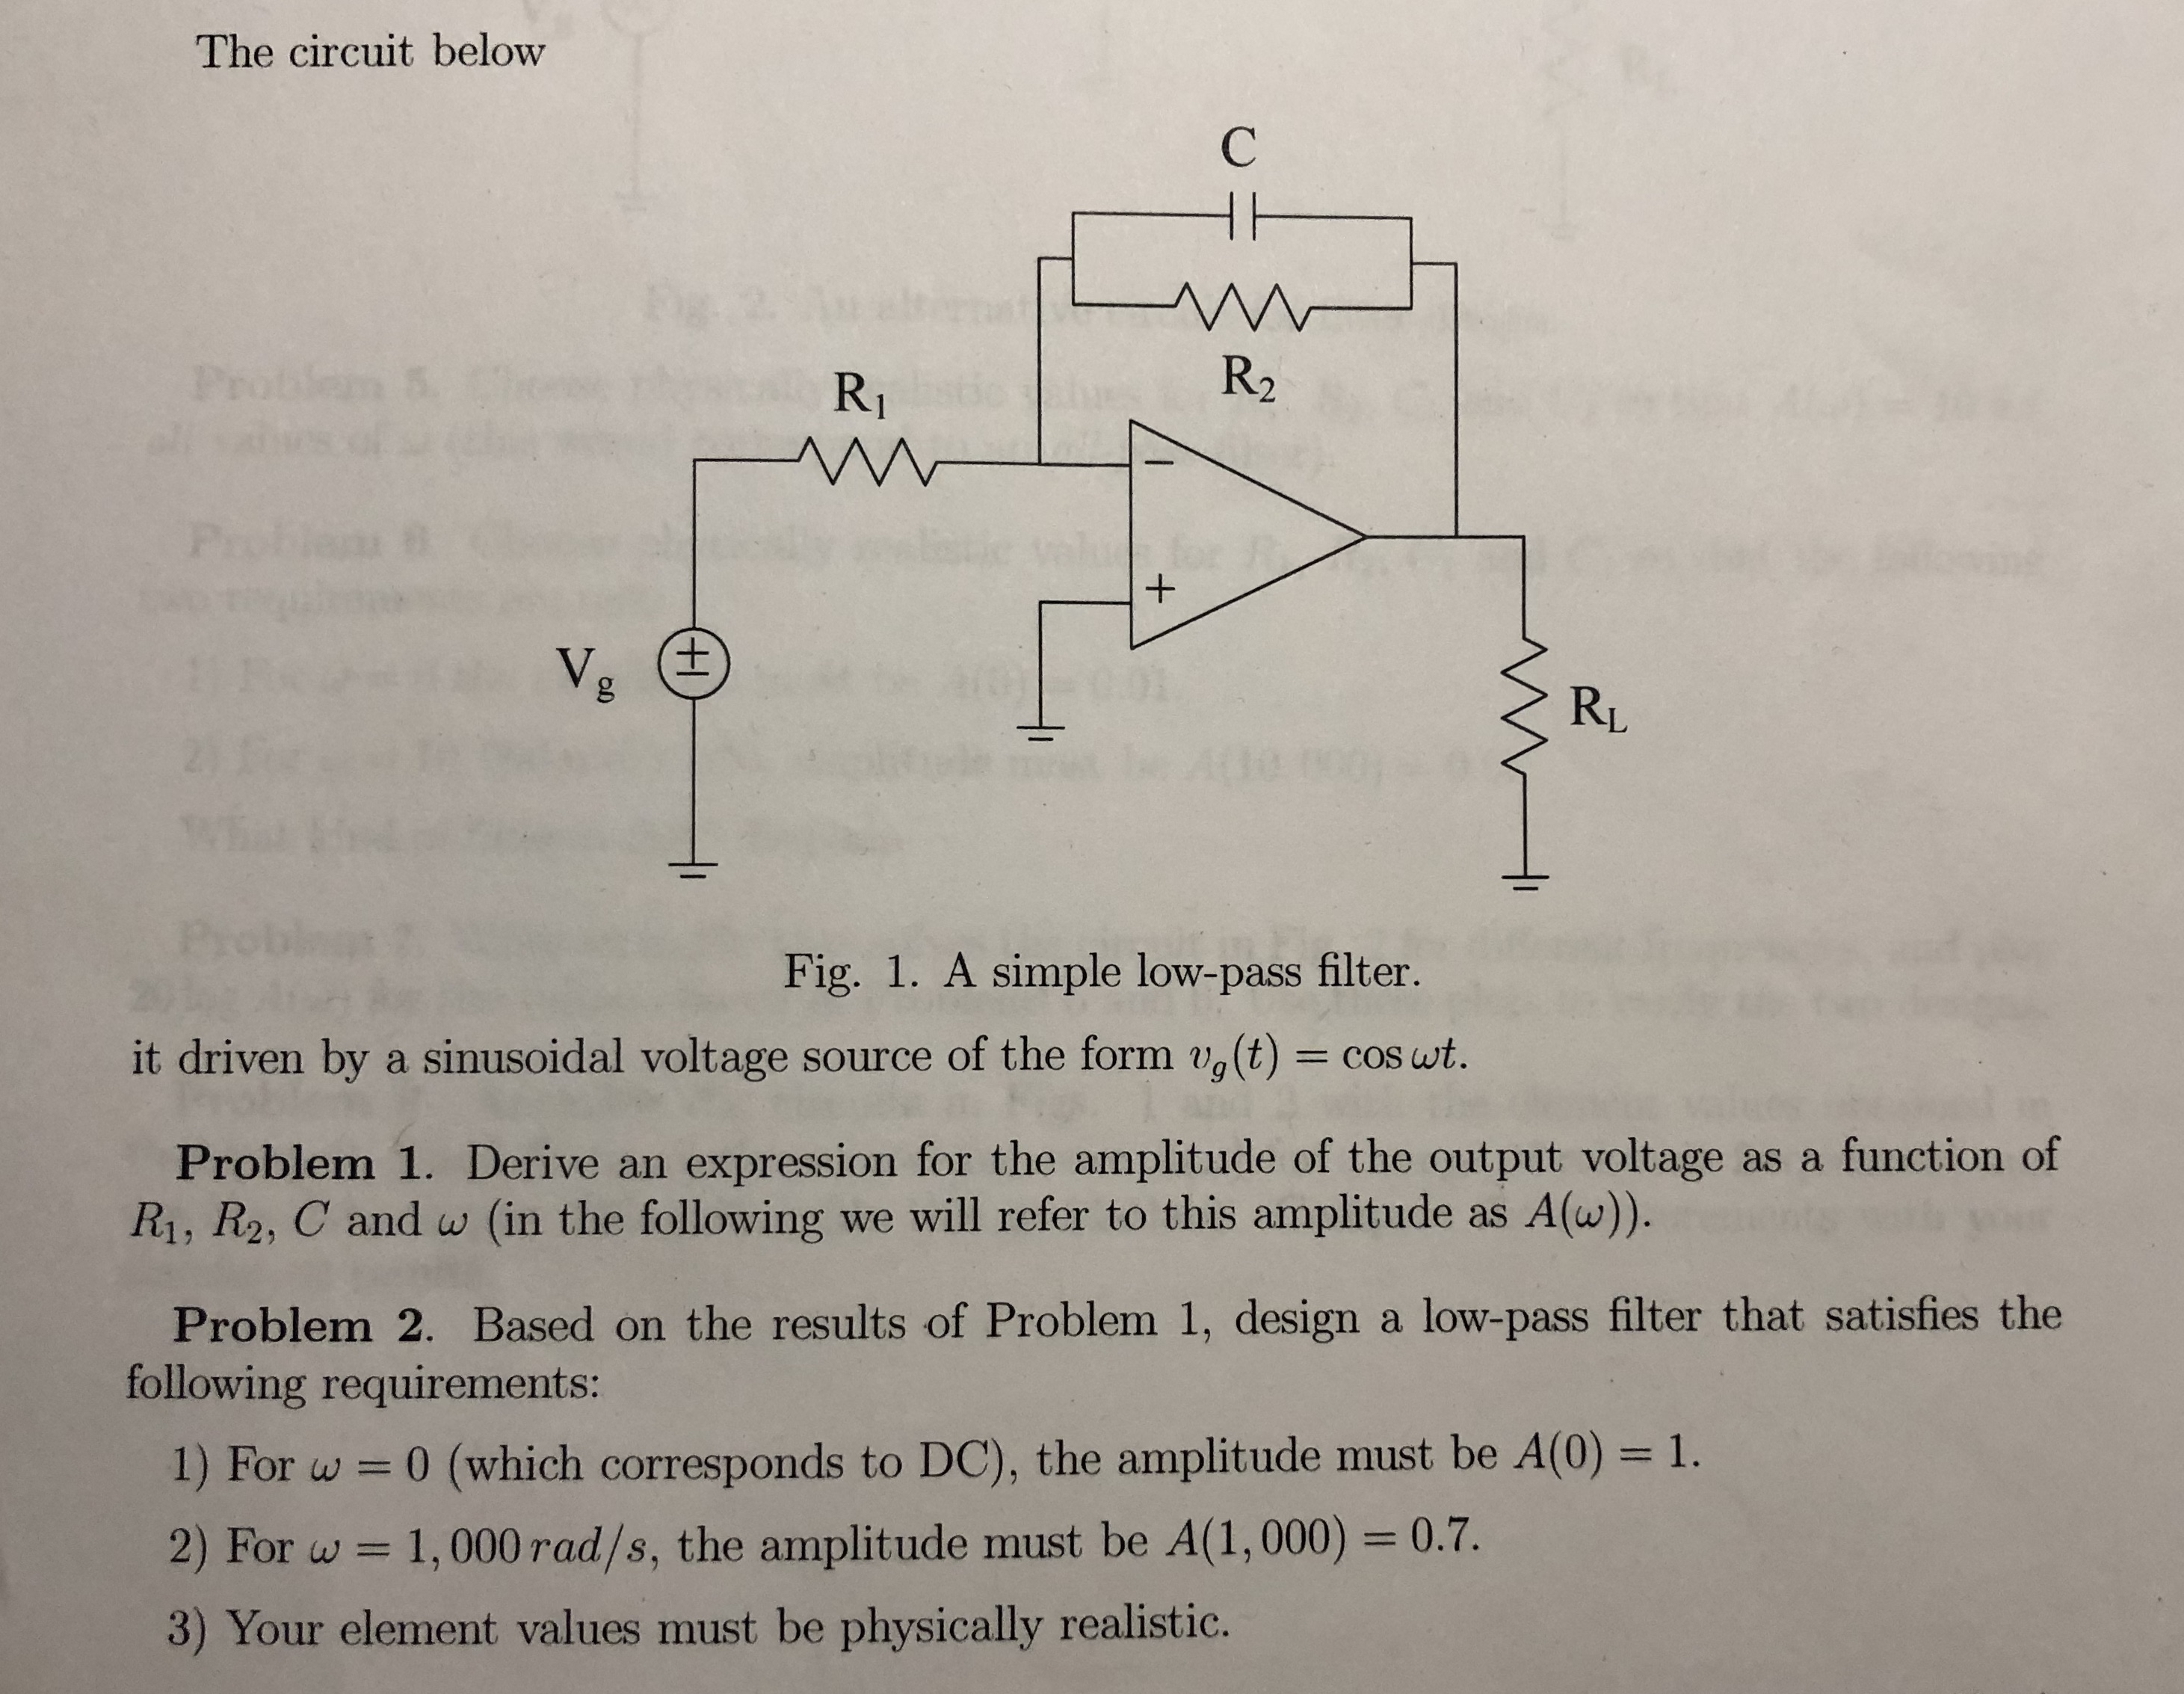 The circuit below R2 RI RL Fig. 1. A simple low-pass filter. it driven by a sinusoidal voltage source of the form ug(t) = cos at Problem 1. Derive an expression for the amplitude of the output voltage as a function of Ri, R2, C and w (in the following we will refer to this amplitude as A(w)). Problem 2. Based on the results of Problem 1, design a low-pass filter that satisfies the following requirements: 1) For w 0 (which corresponds to DC), the amplitude must be A(0) -1. 2) For w 1,000rad/s, the amplitude must be A(1,000) 0.7. 3) Your element values must be physically realistio.